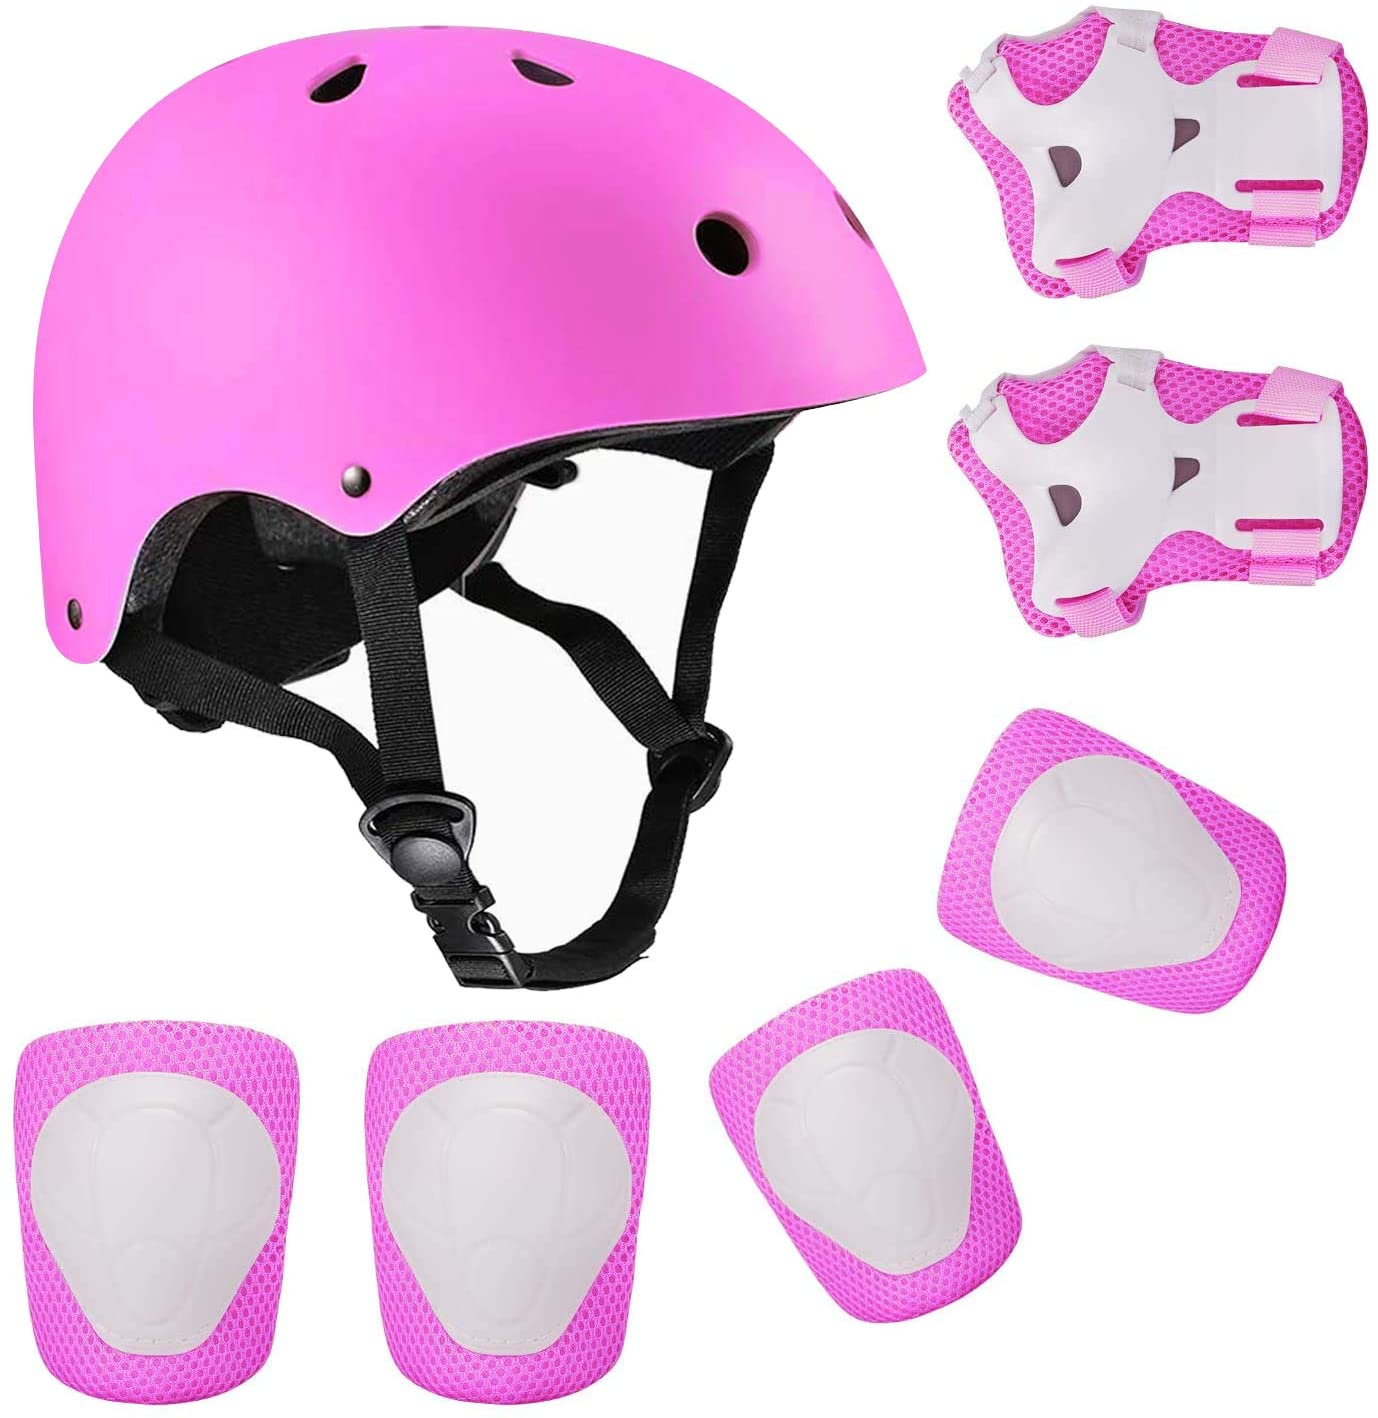 Child Protective Set Knee Pads Elbow Pads Wrist Helmet Protector Skating Roller Bike Protective Gear Sets For Kids Safety Cap